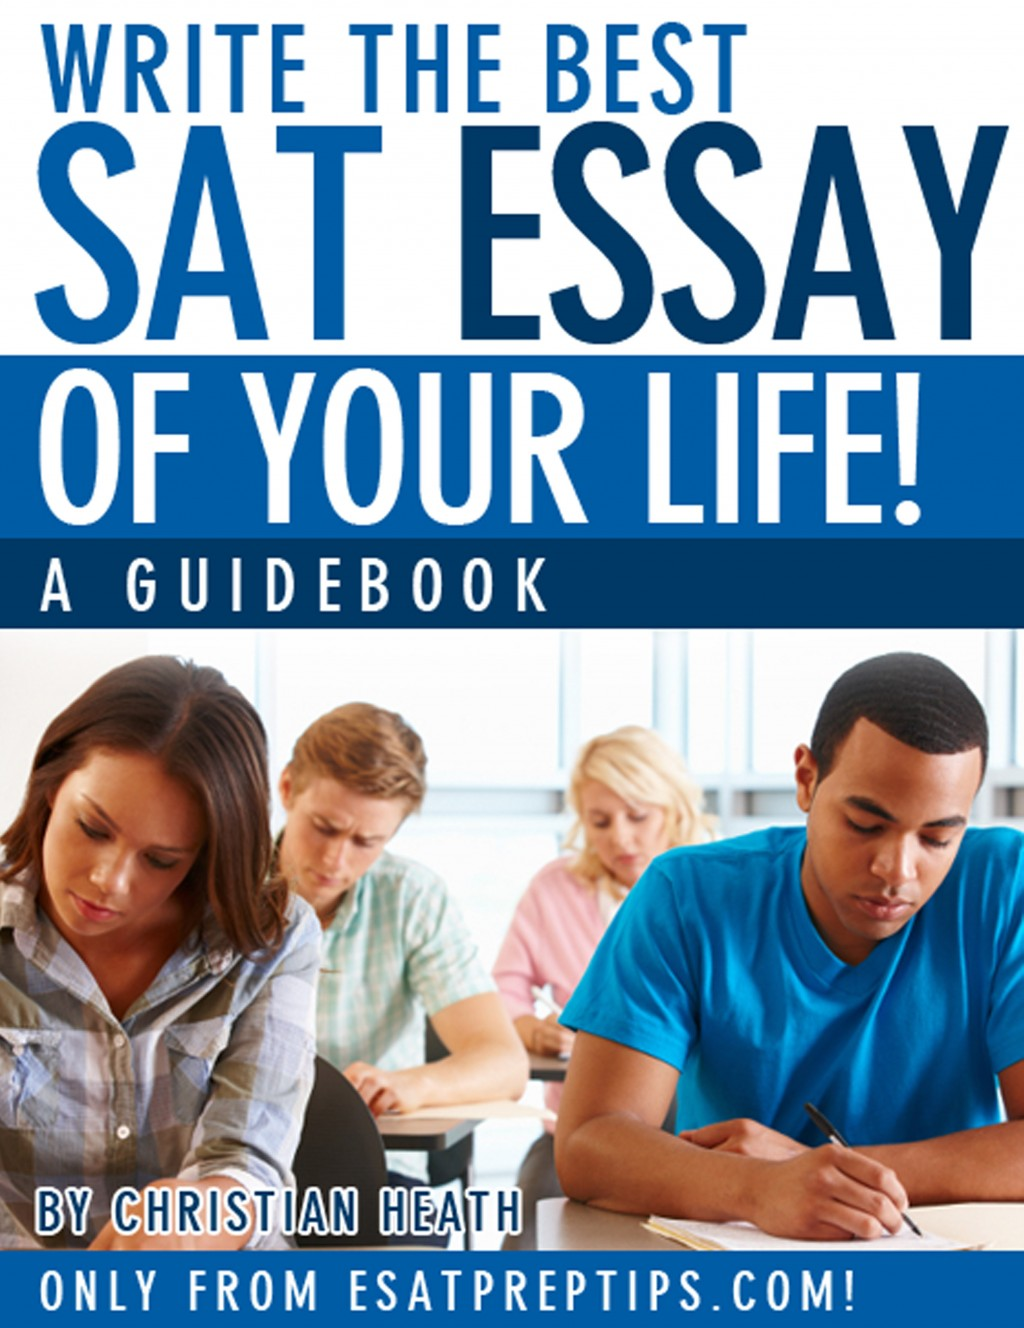 028 Write The Best Sat Essay Of Your Life Writing Tips Fascinating Pdf Large